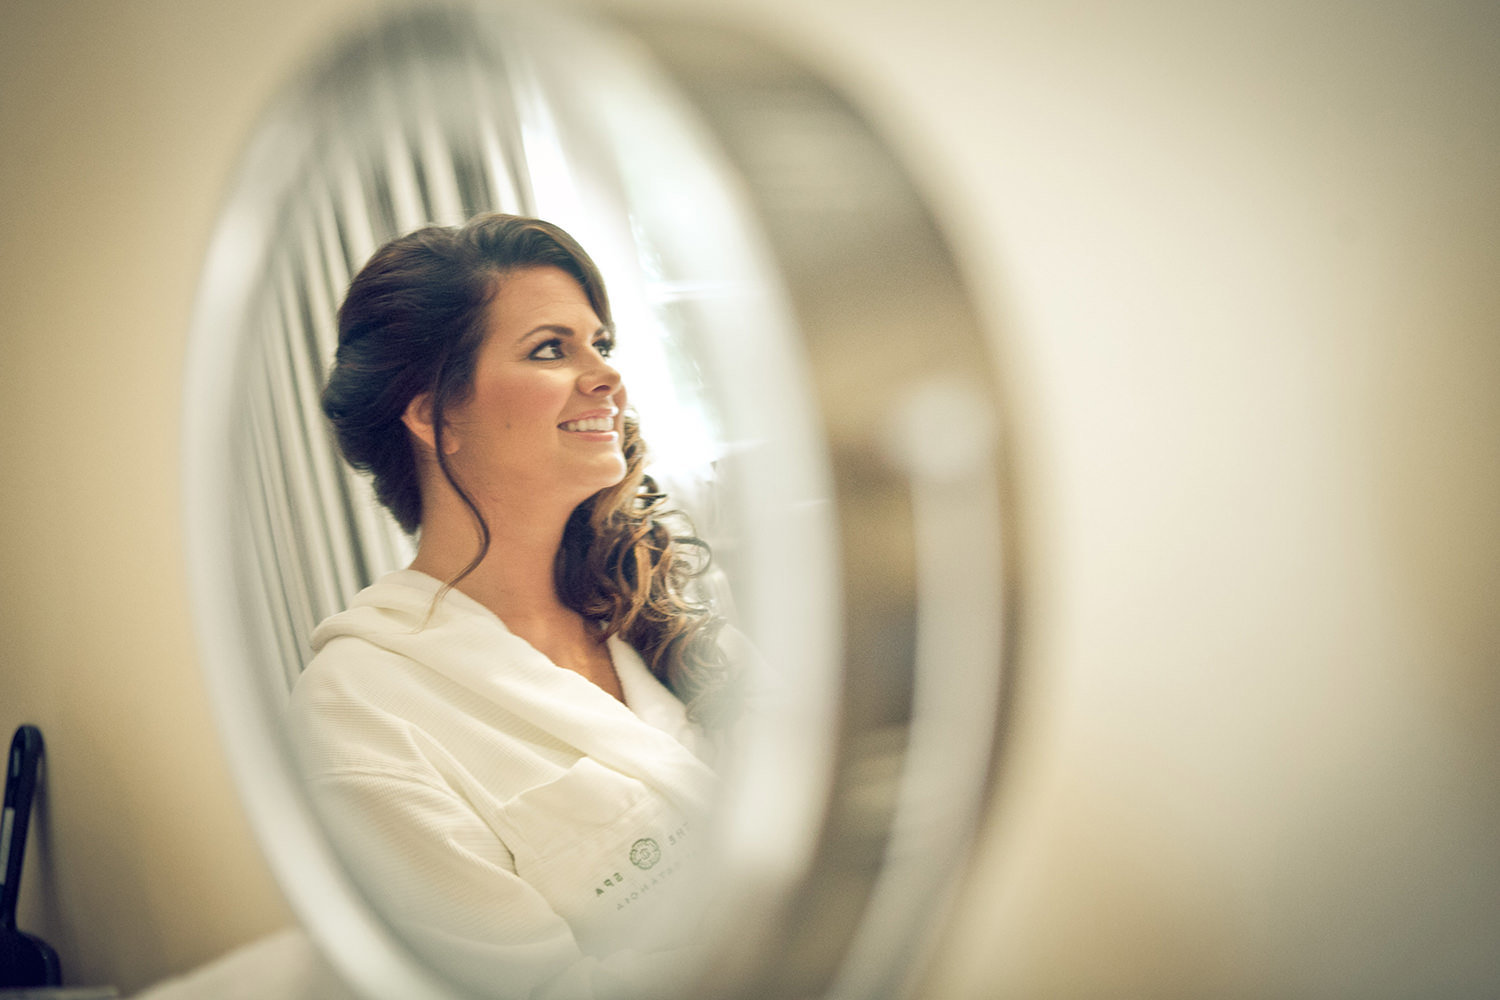 Framing the bride in the mirror